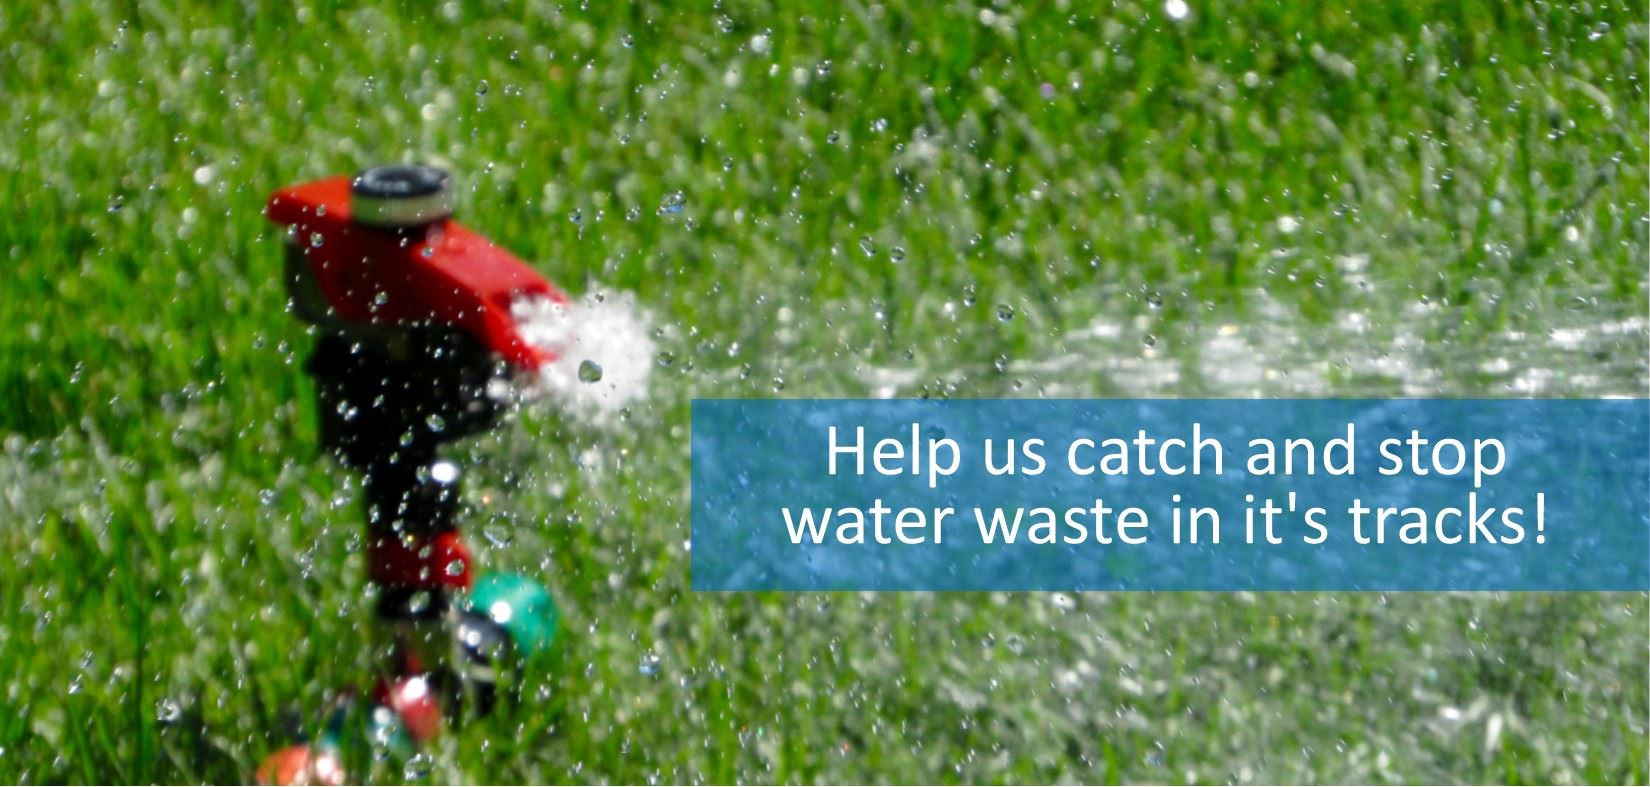 Water Waste - Help us catch and stop water waste in its tracks!